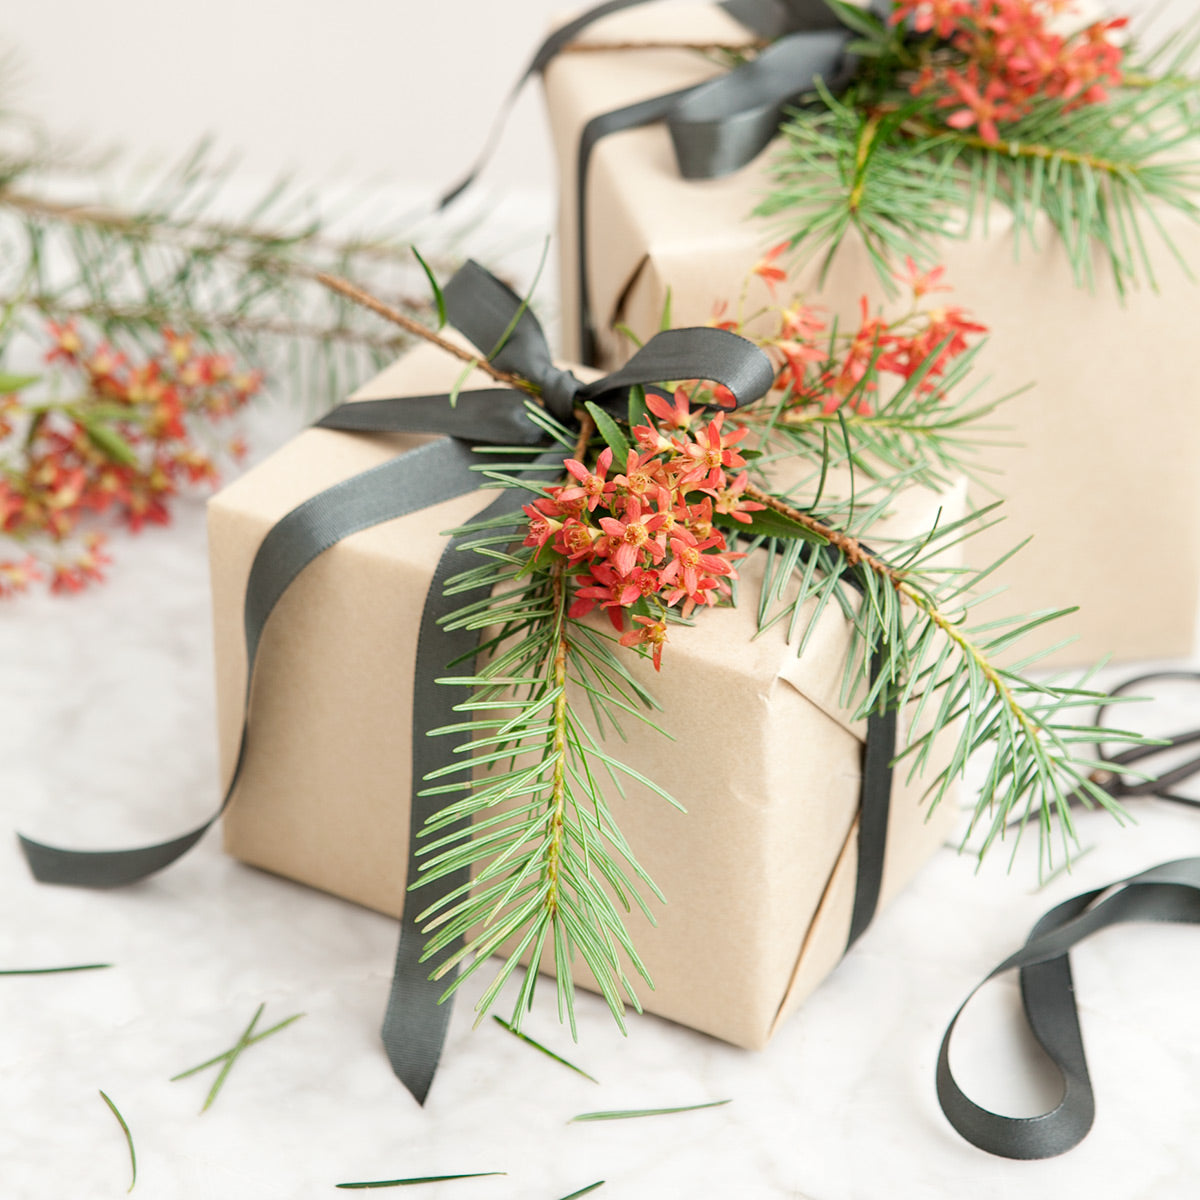 Gifts wrapped in brown paper with foliage and grey ribbon.